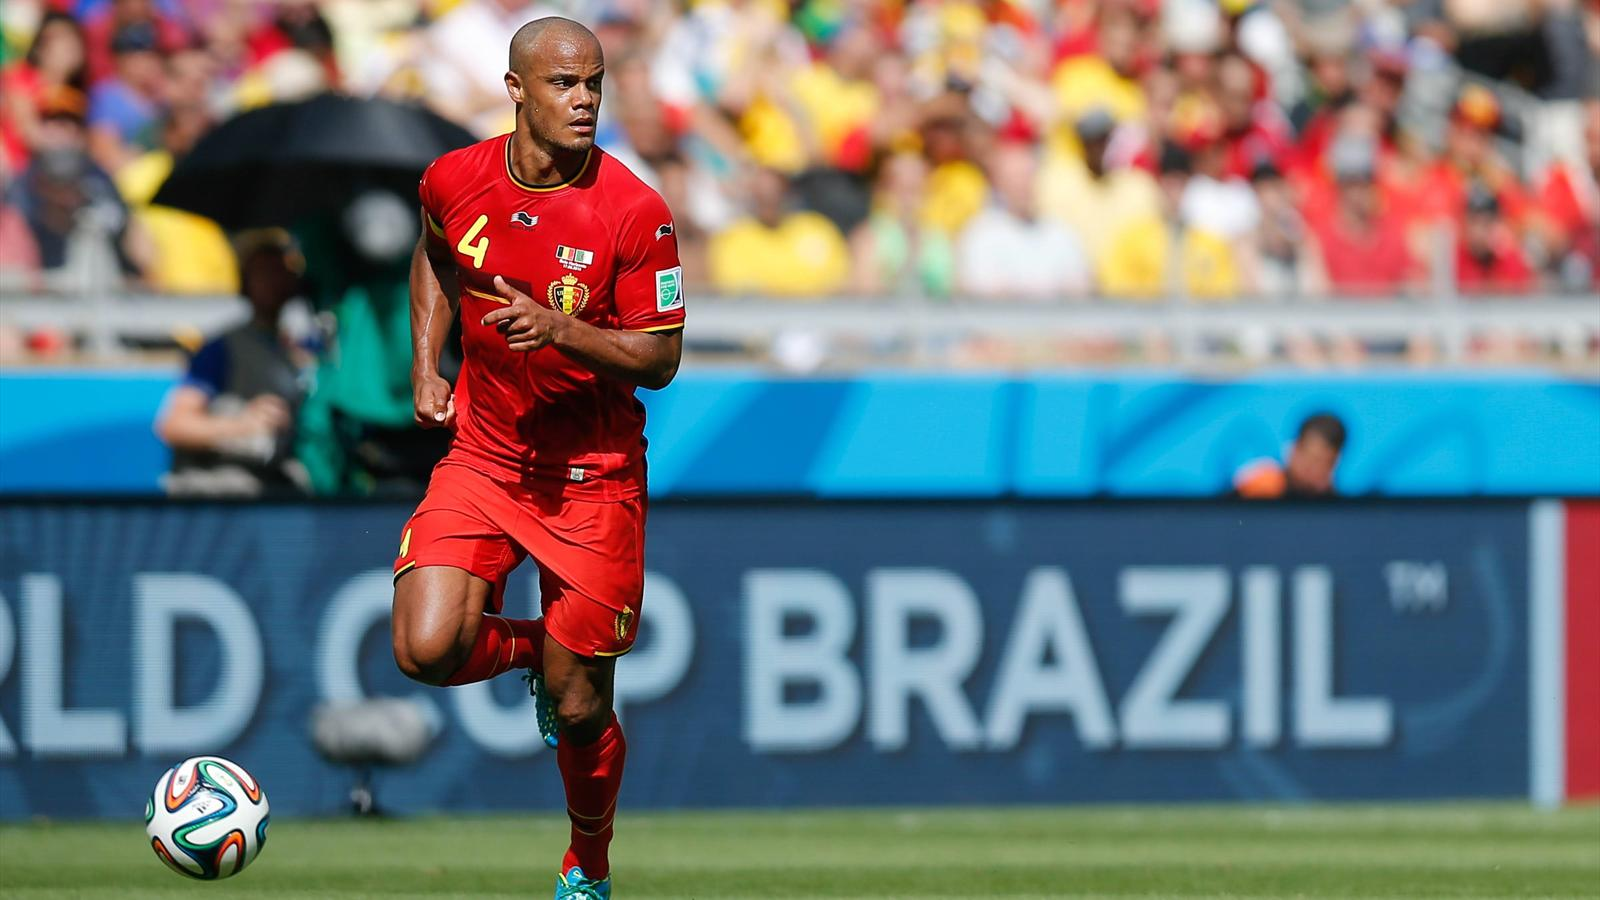 Vincent Kompany in Belgium against Algeria